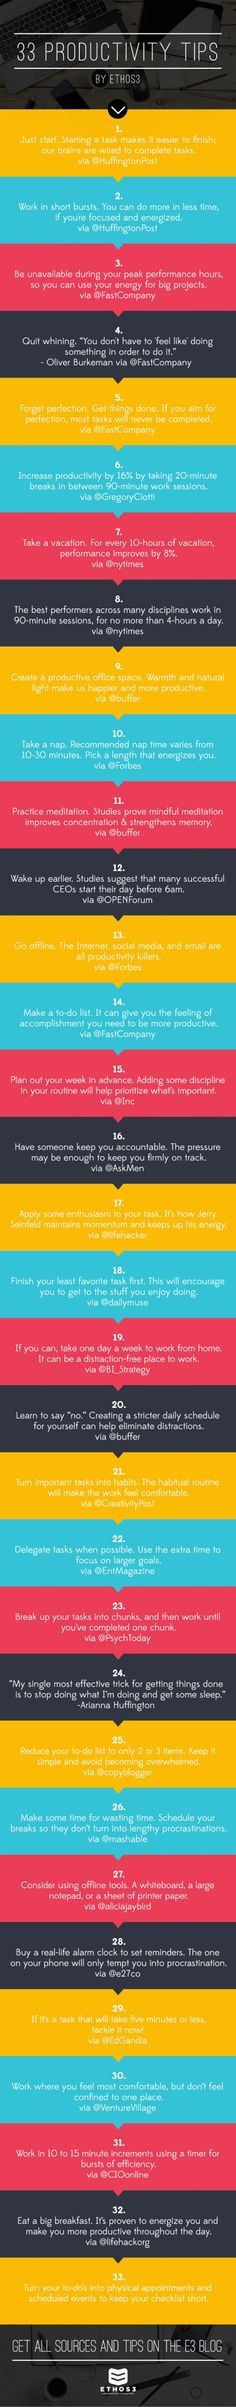 33 Productivity Tips in 140 Characters or Less  #studytips #motivation